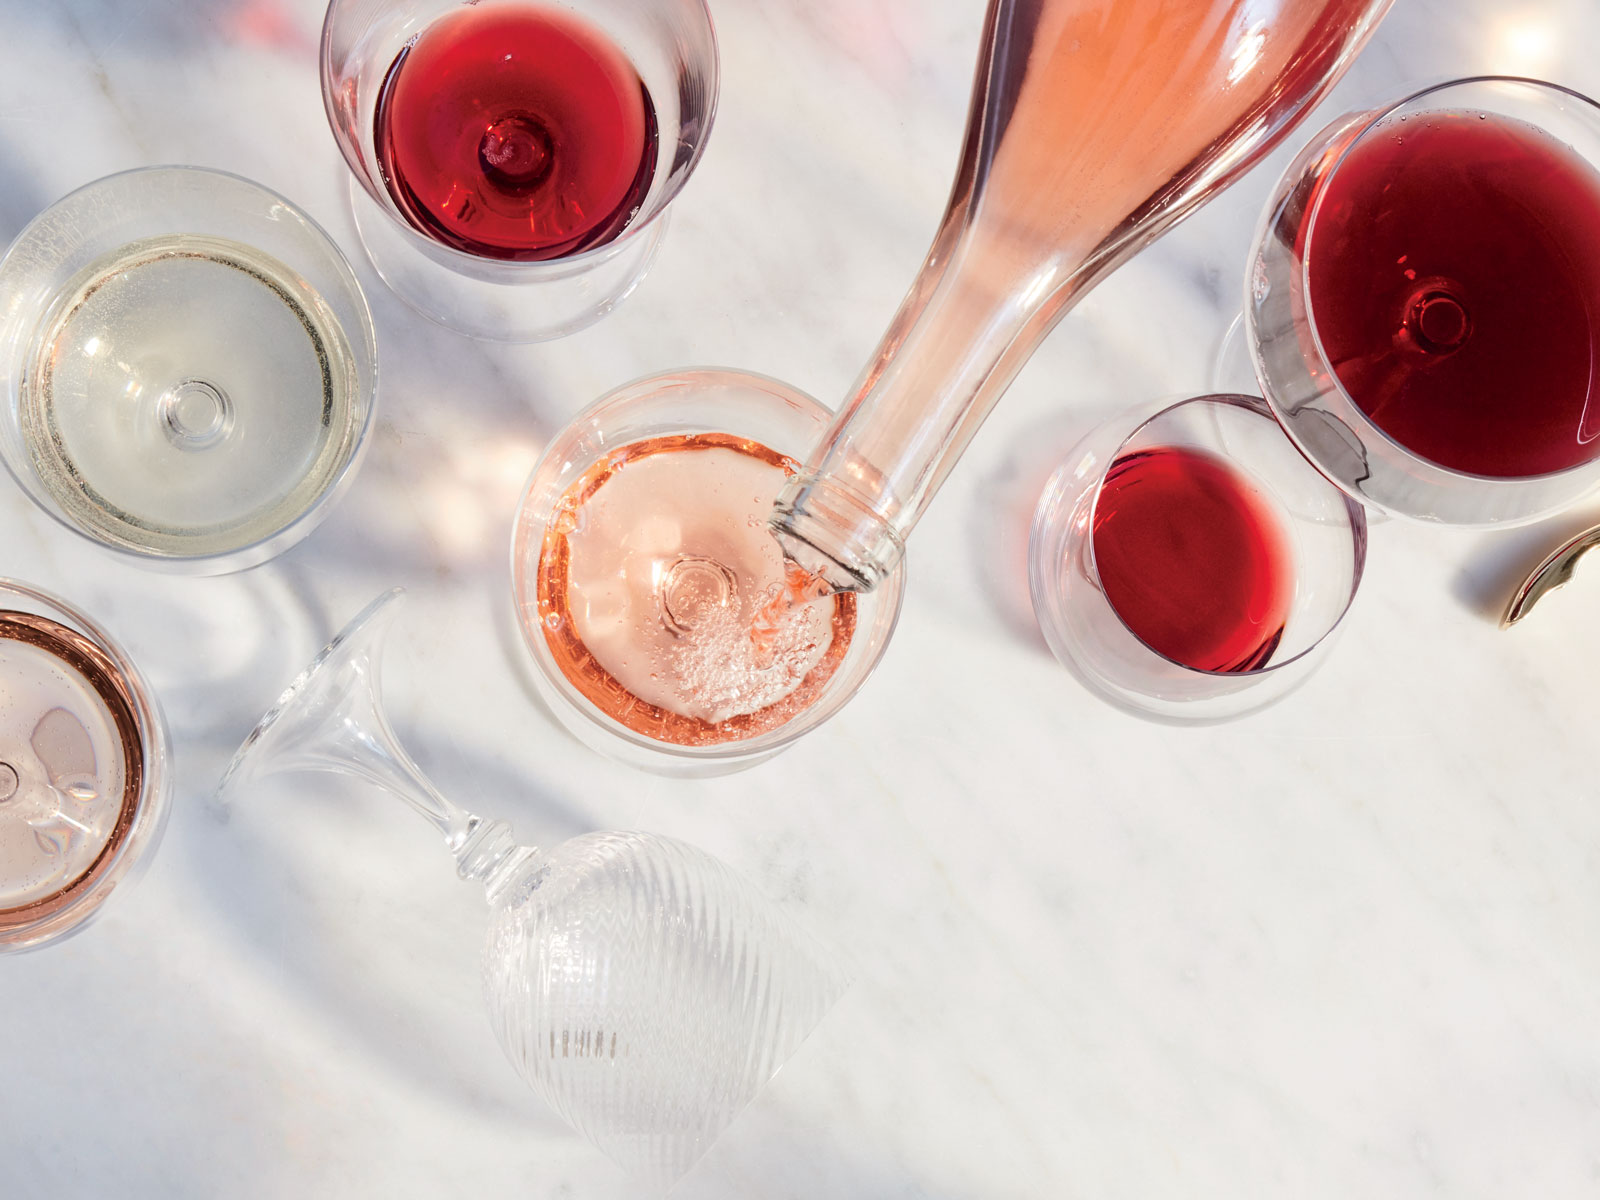 40 Most Influential Wines